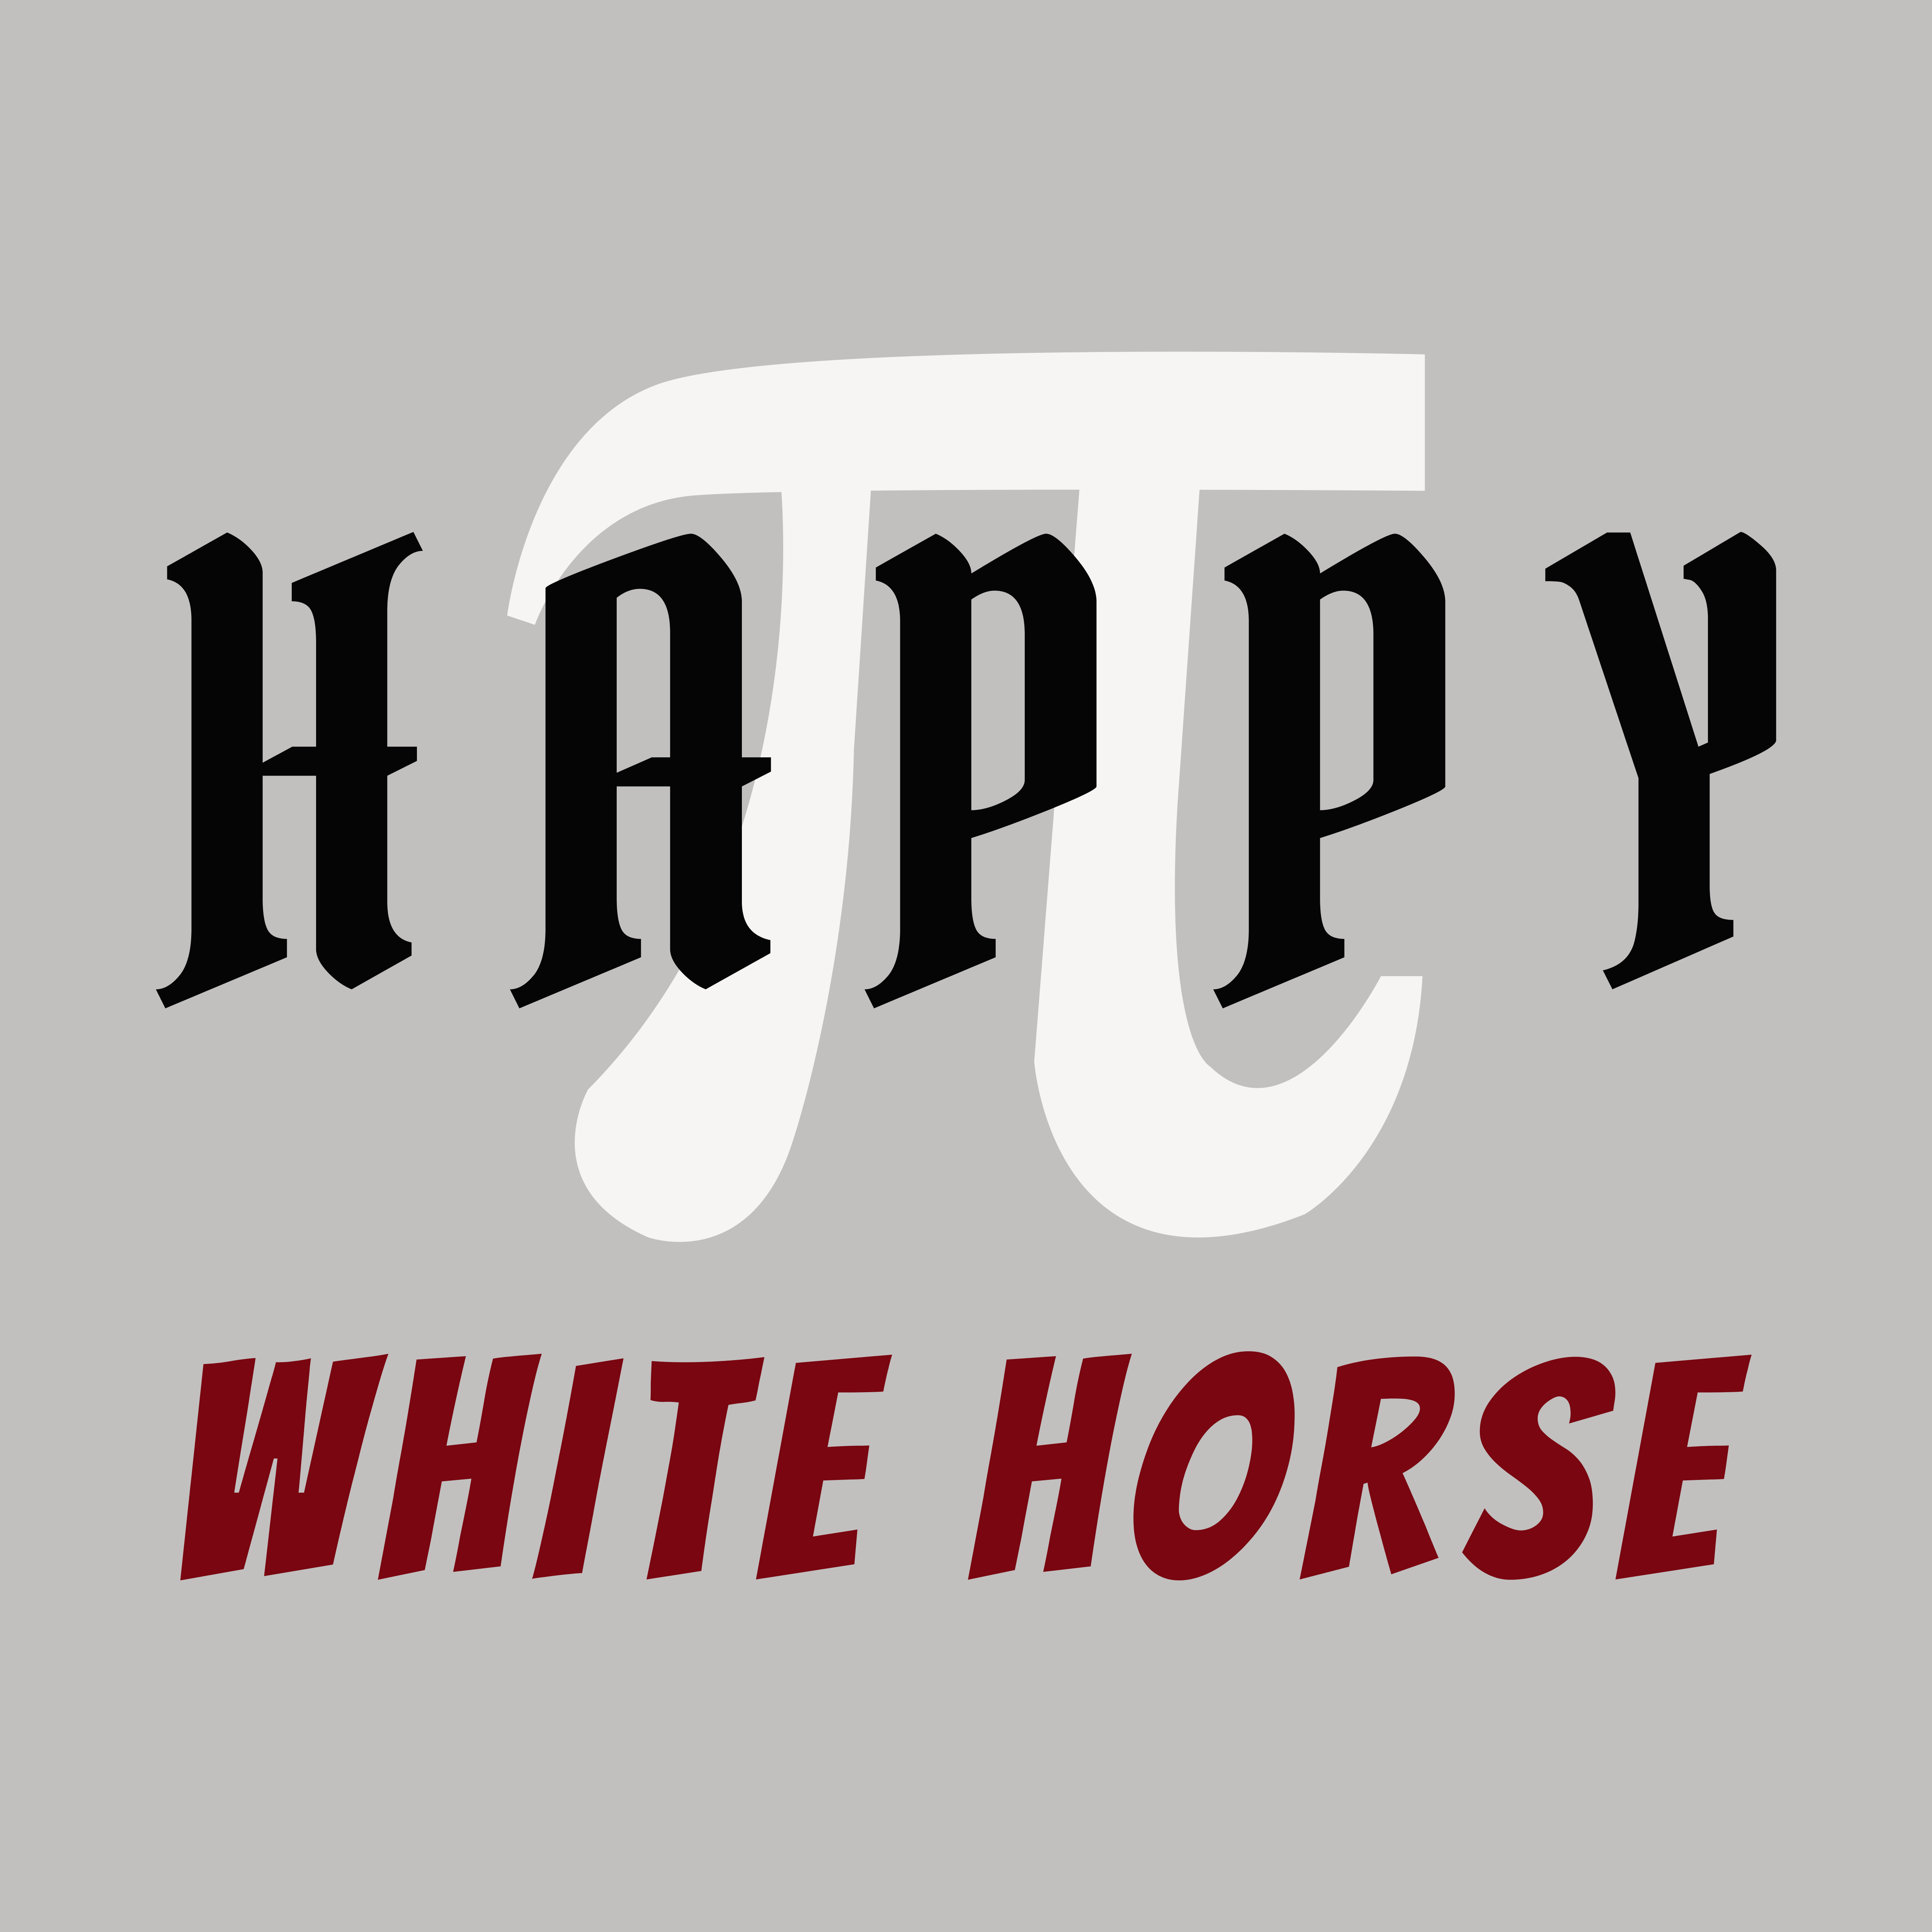 HAPPY WHITE HORSE ©